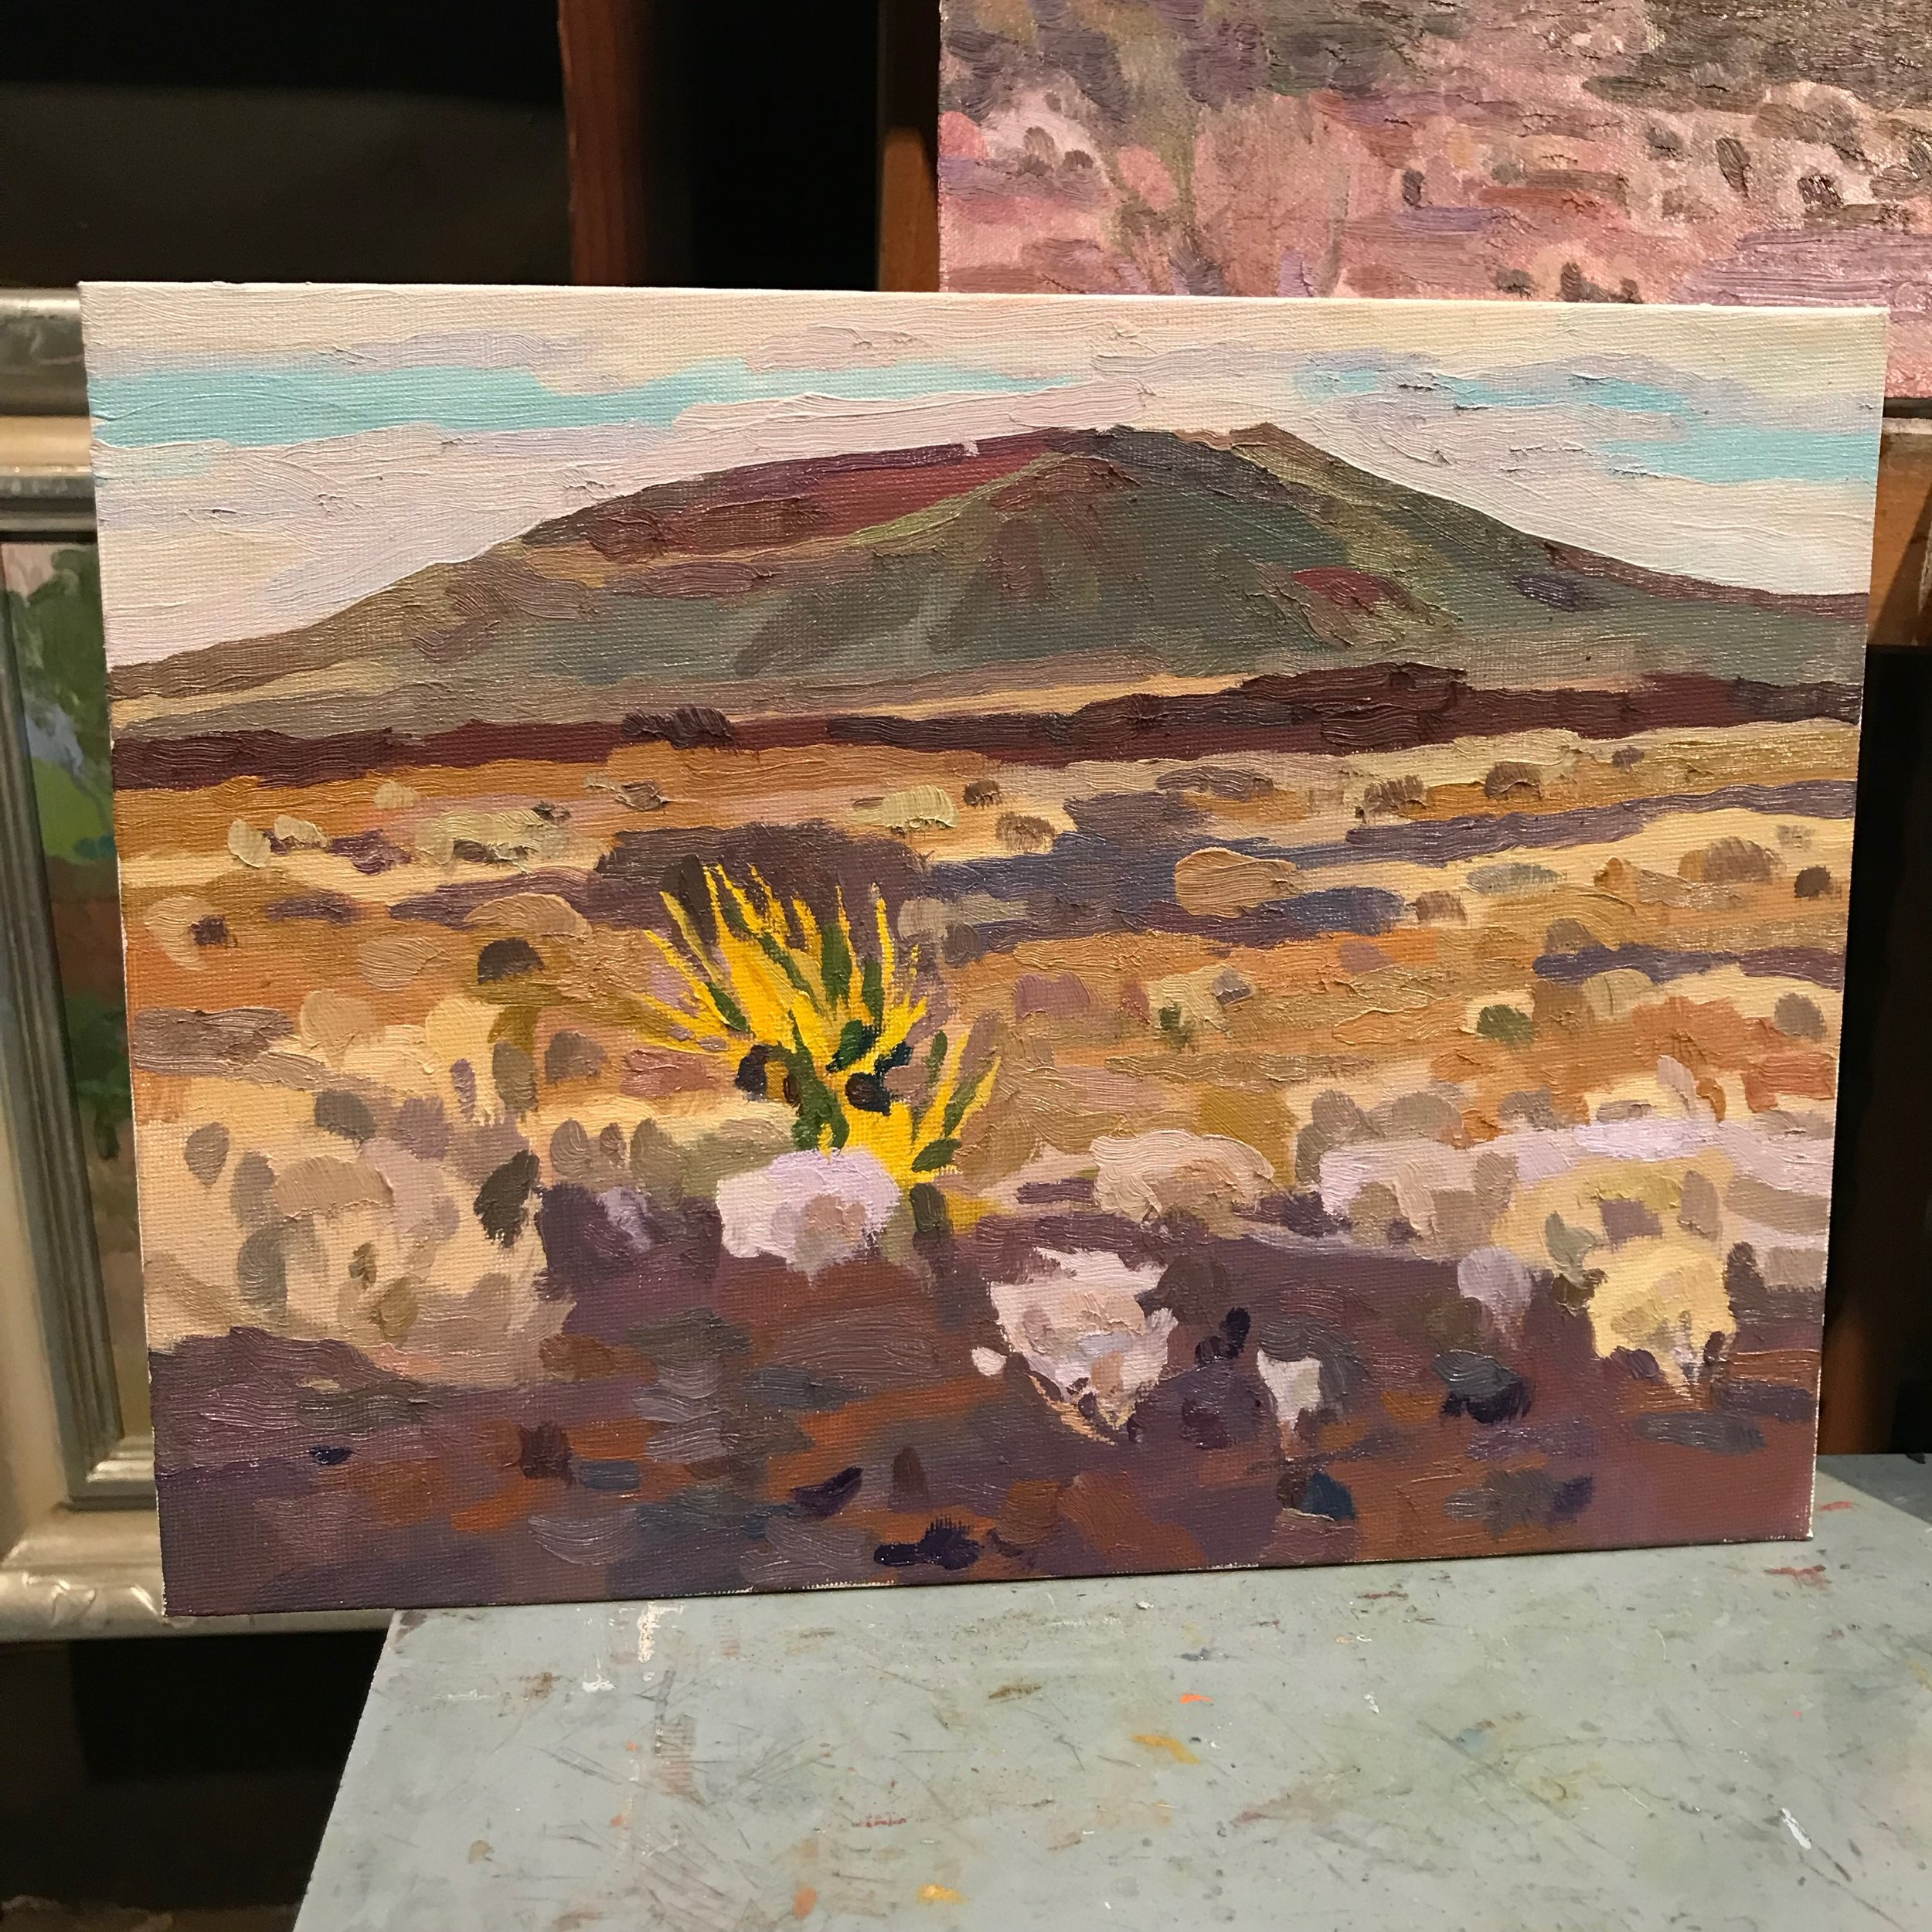 The painting from the location above; the color of a Mojave yucca among the lava rock is so fun.